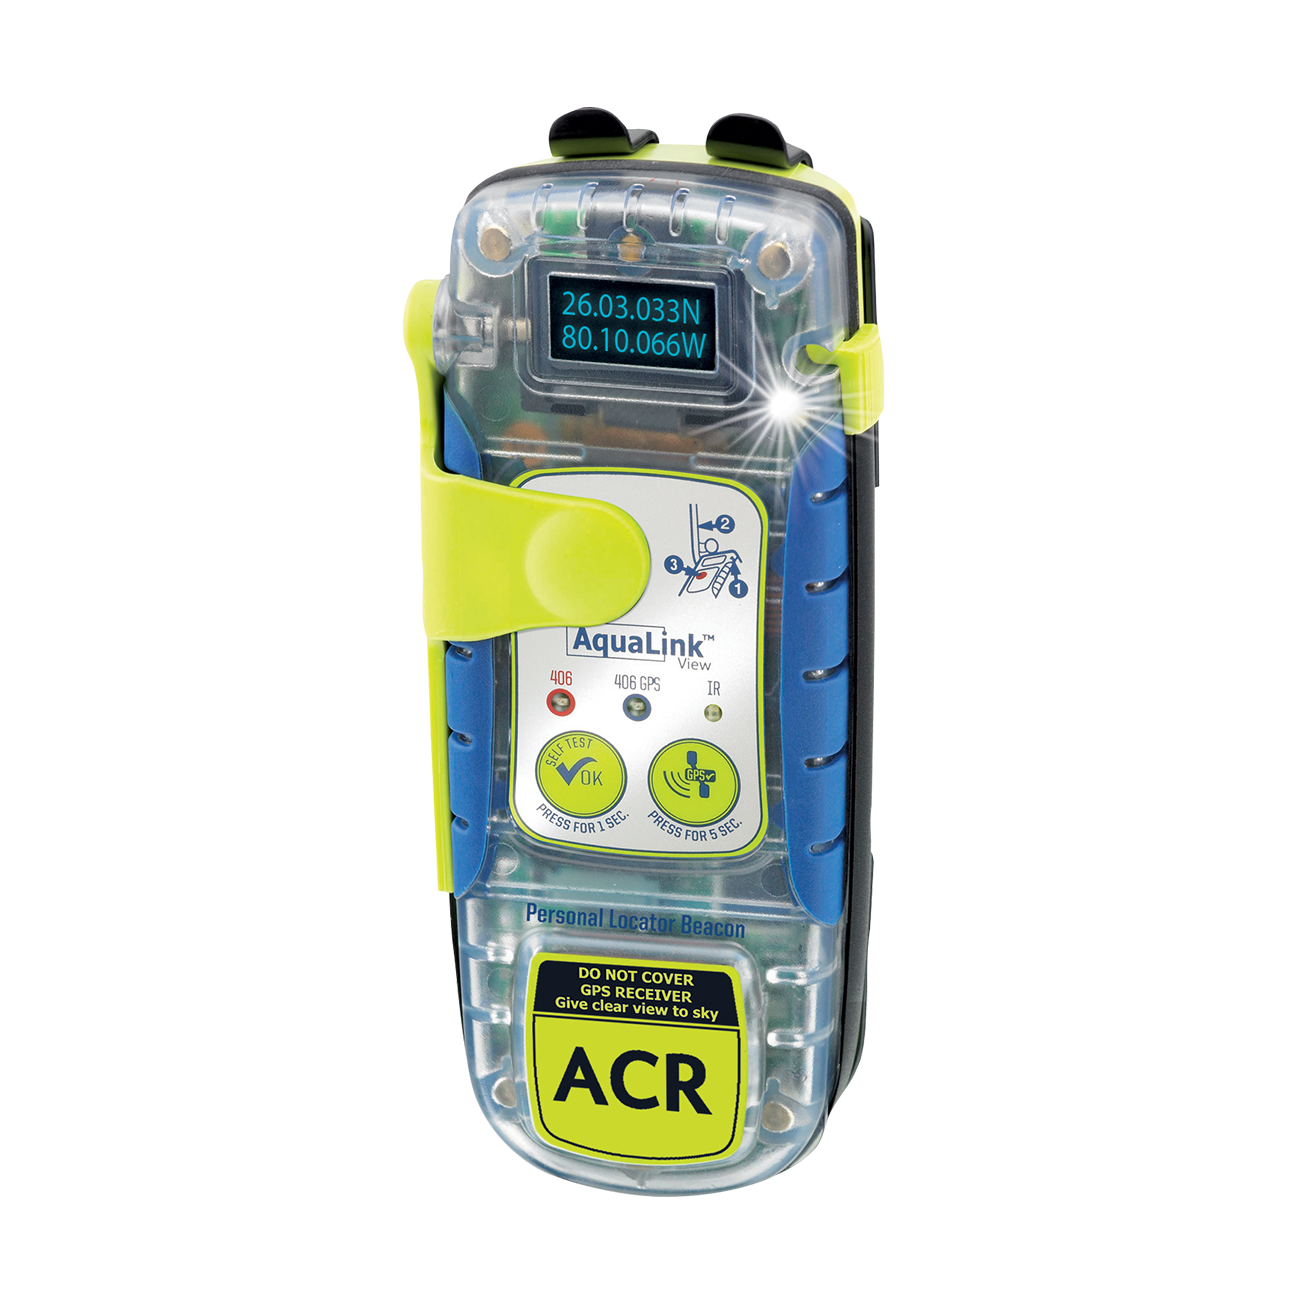 Acr   product   aqualink view   front